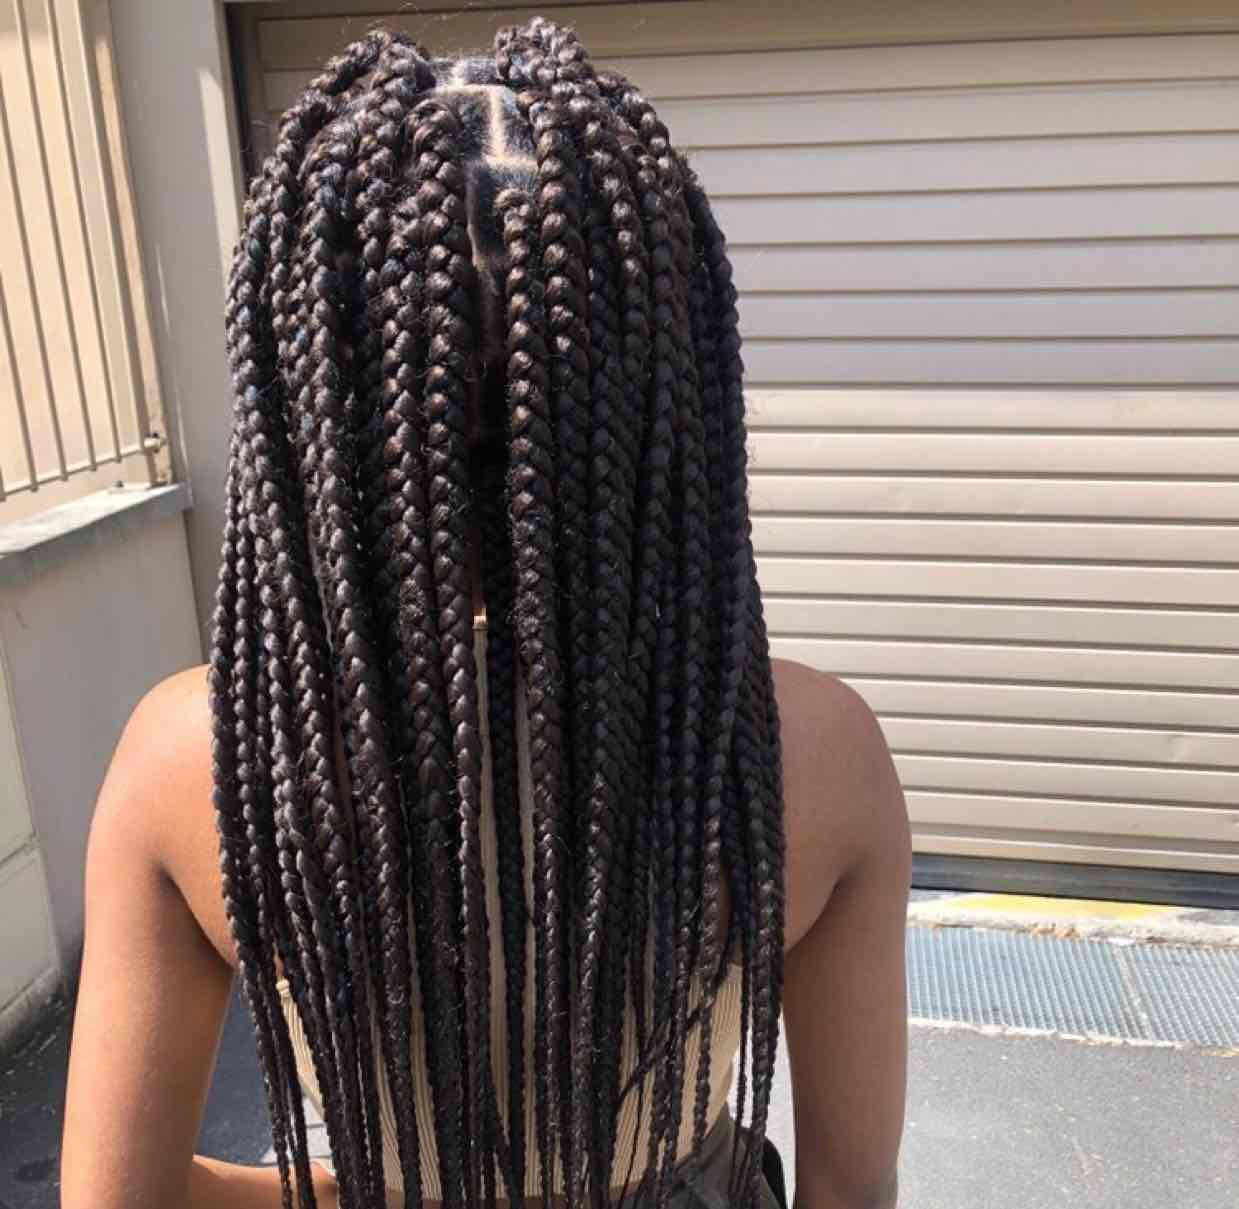 salon de coiffure afro tresse tresses box braids crochet braids vanilles tissages paris 75 77 78 91 92 93 94 95 AEWDDSXE